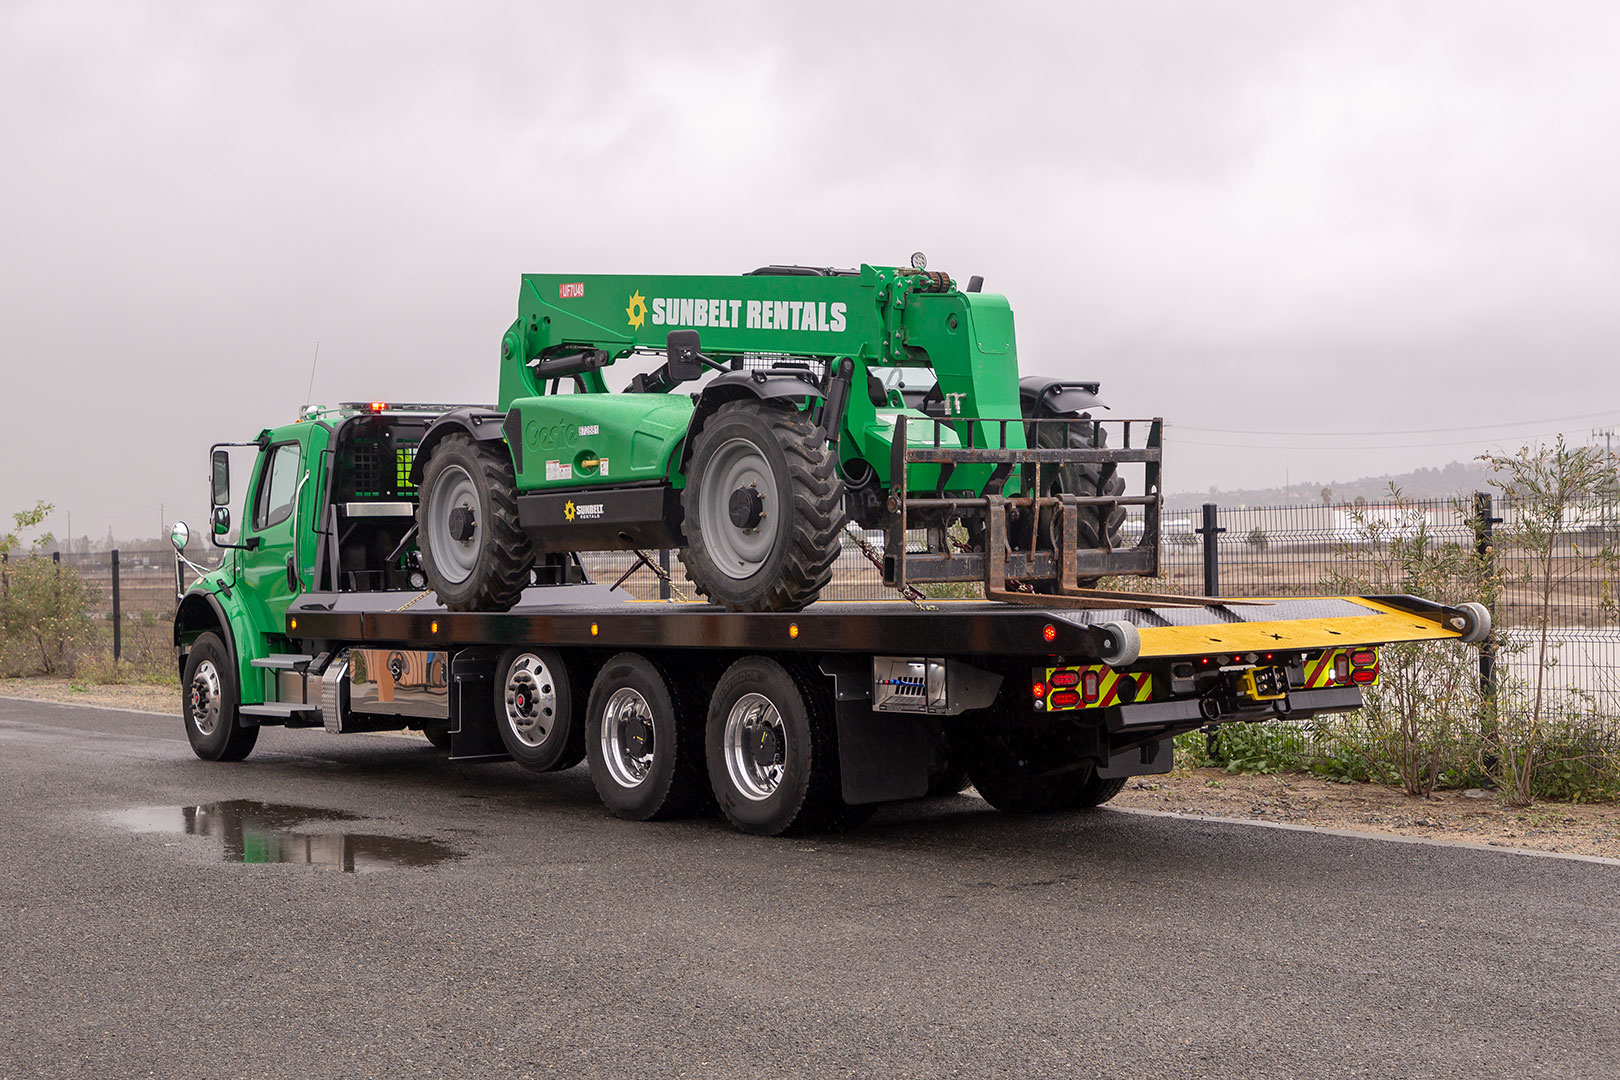 titan zla on green Freightliner m2 chassis bed stowed loaded with equipment